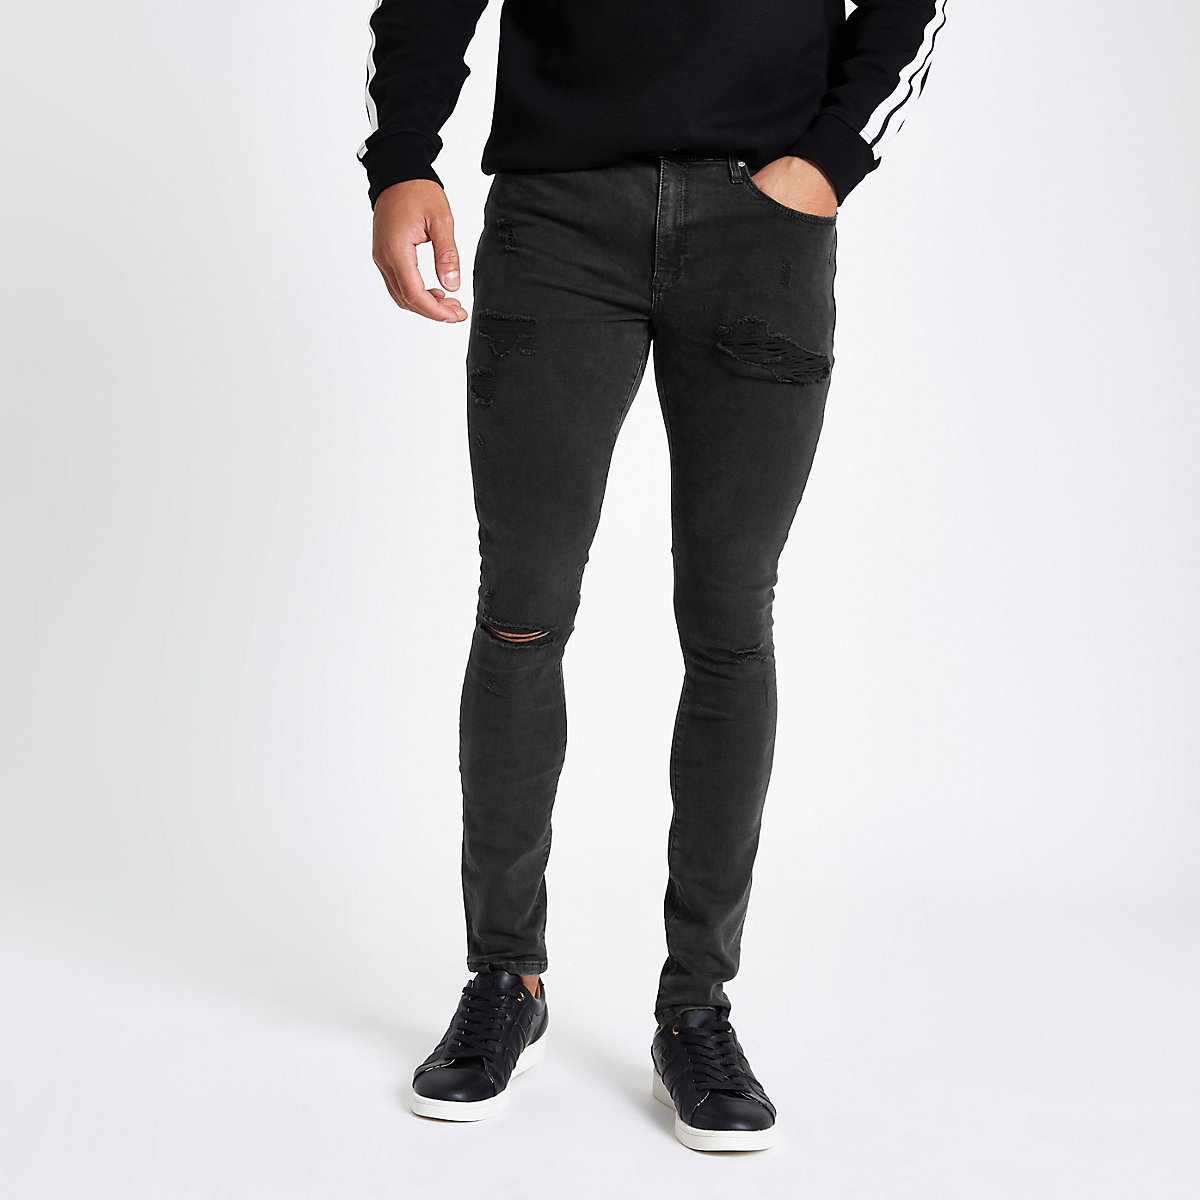 Black spray on ripped Ollie jeans